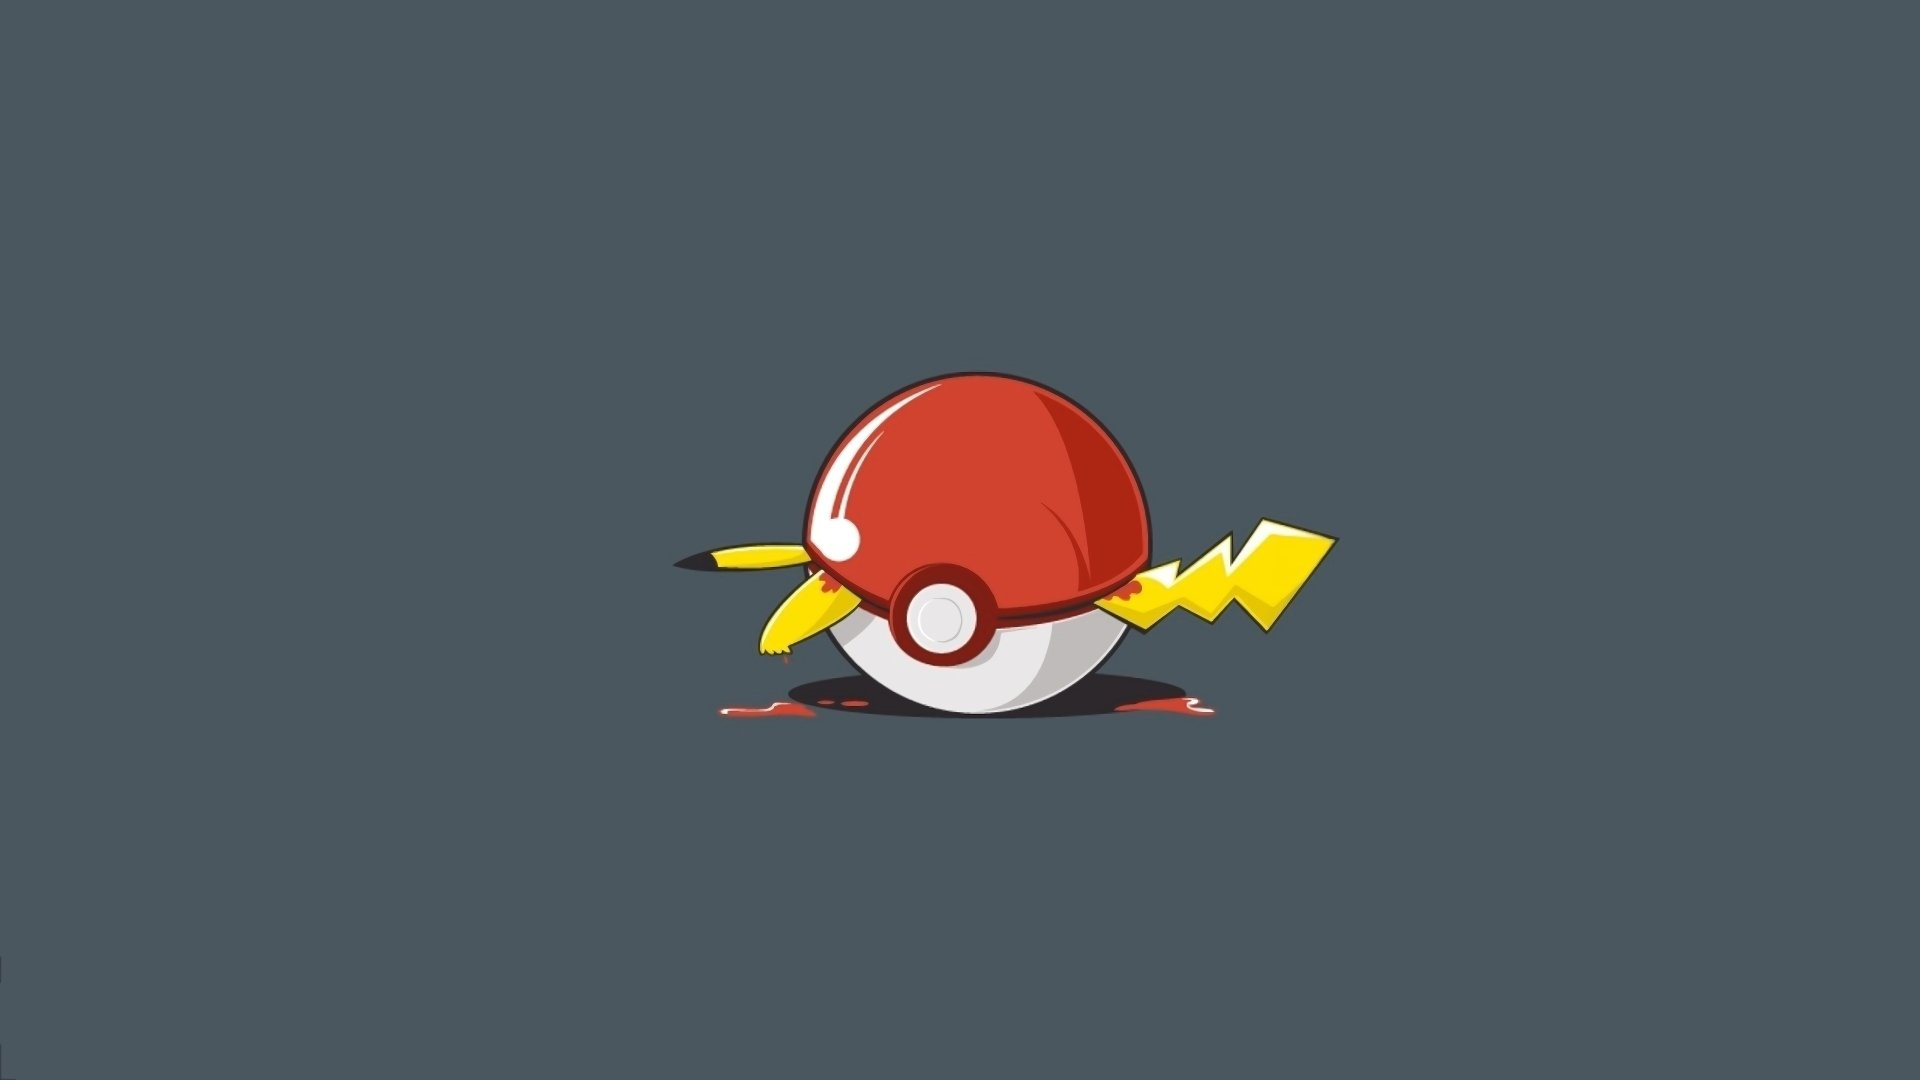 Anime - Pokémon  Pikachu Pokeball Wallpaper